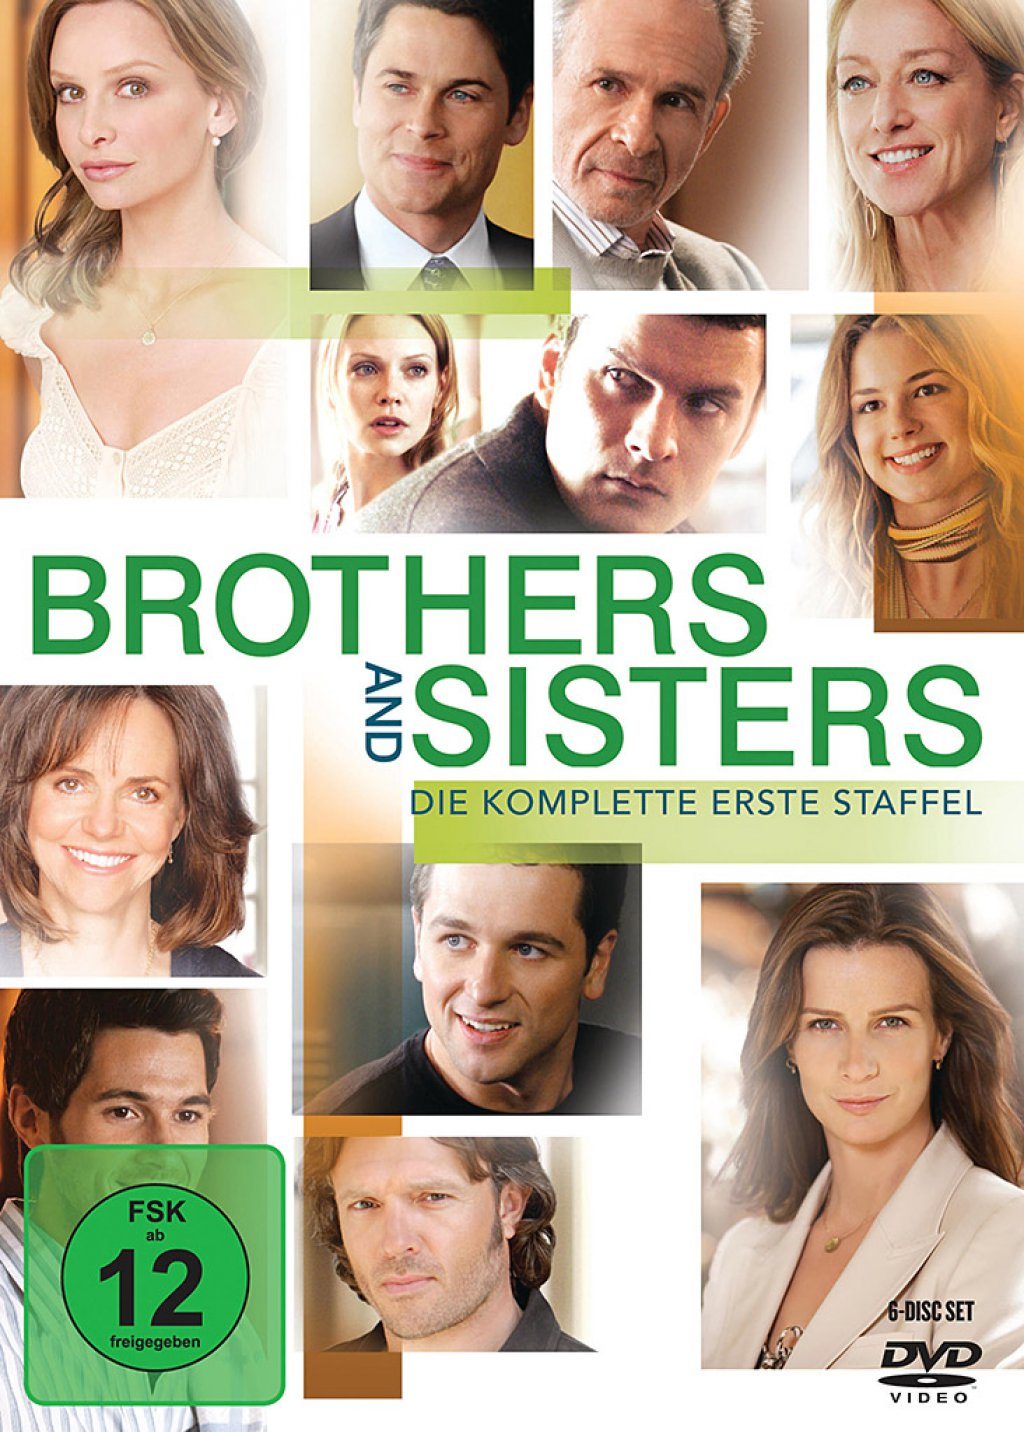 Sister and brother video hd download softcore videos